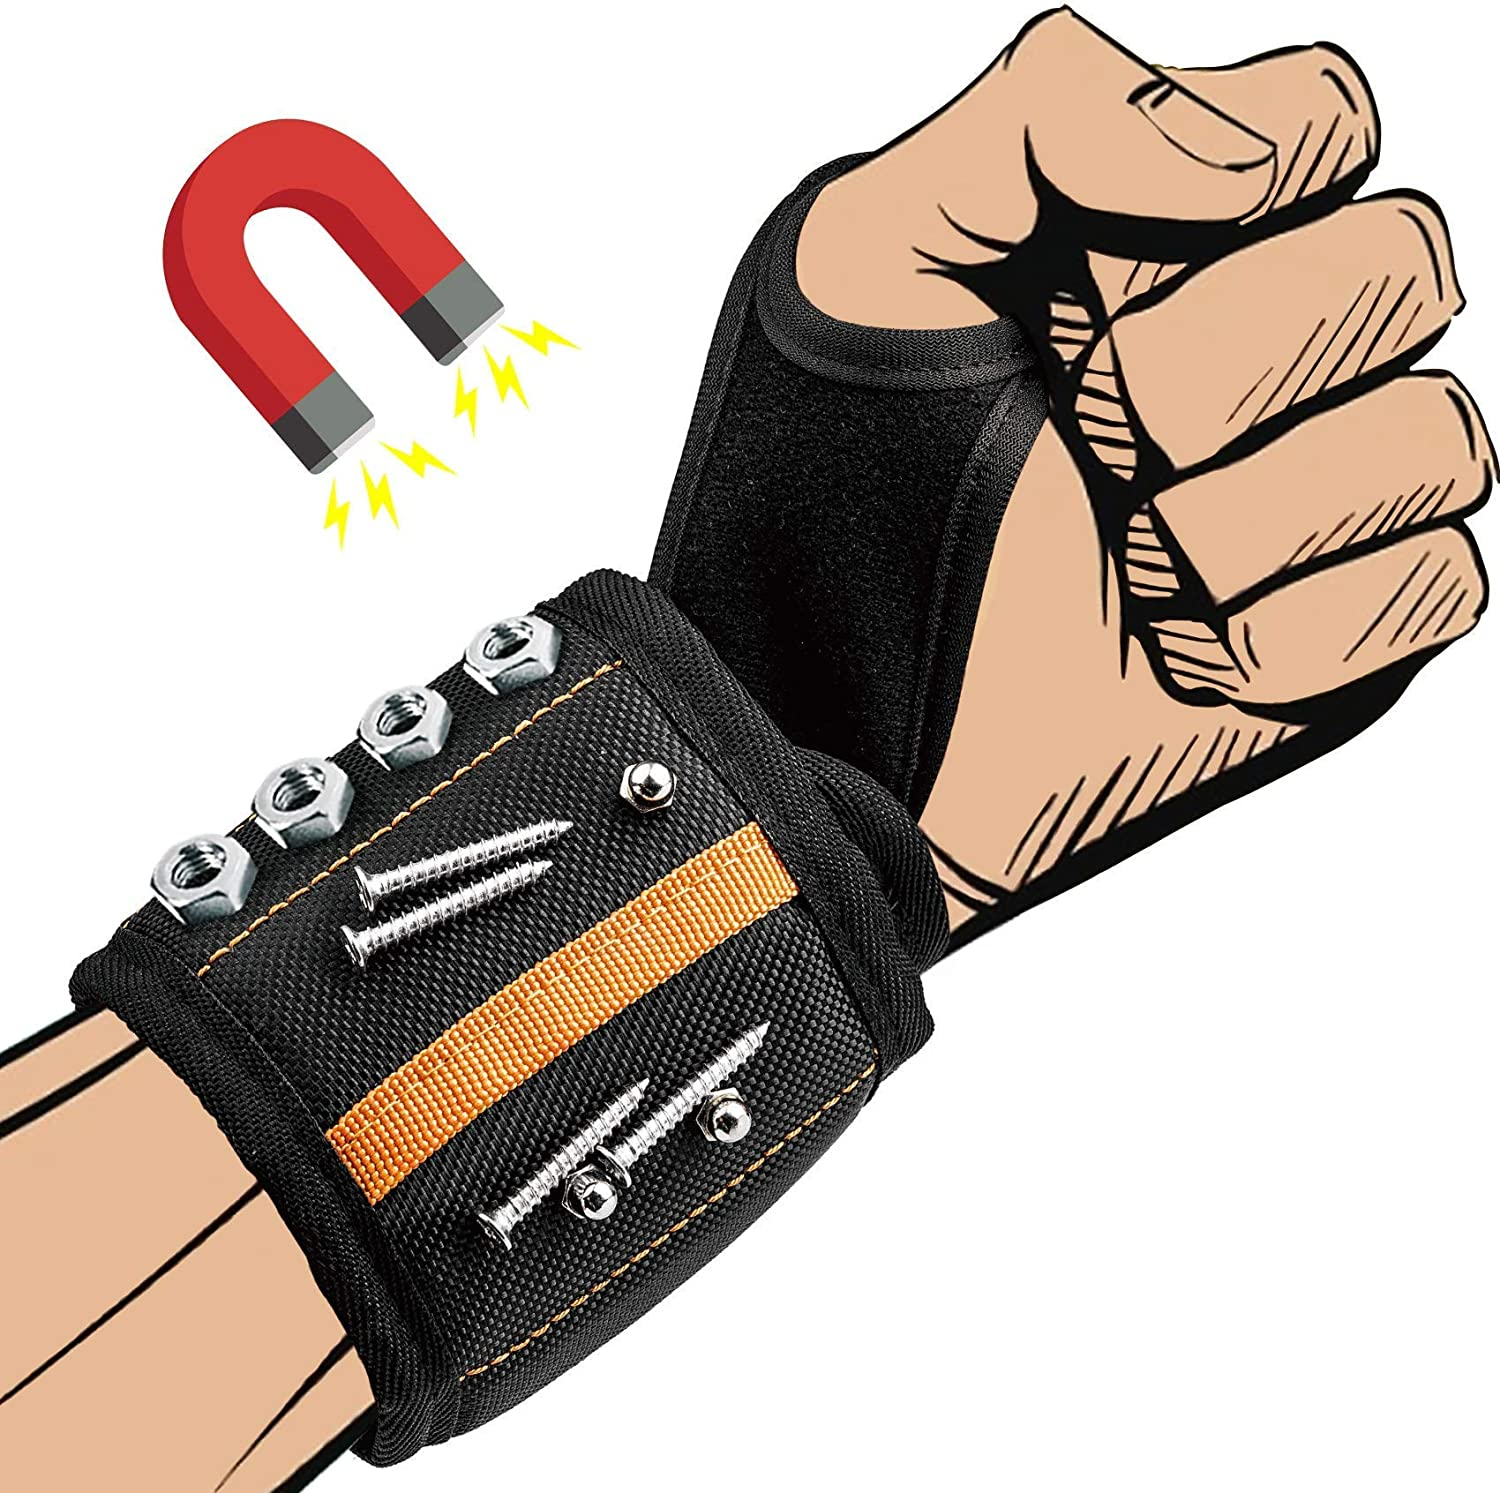 Magnetic OFFicial site Wristband With Outlet sale feature 20 Strong Wrist Super Magnets